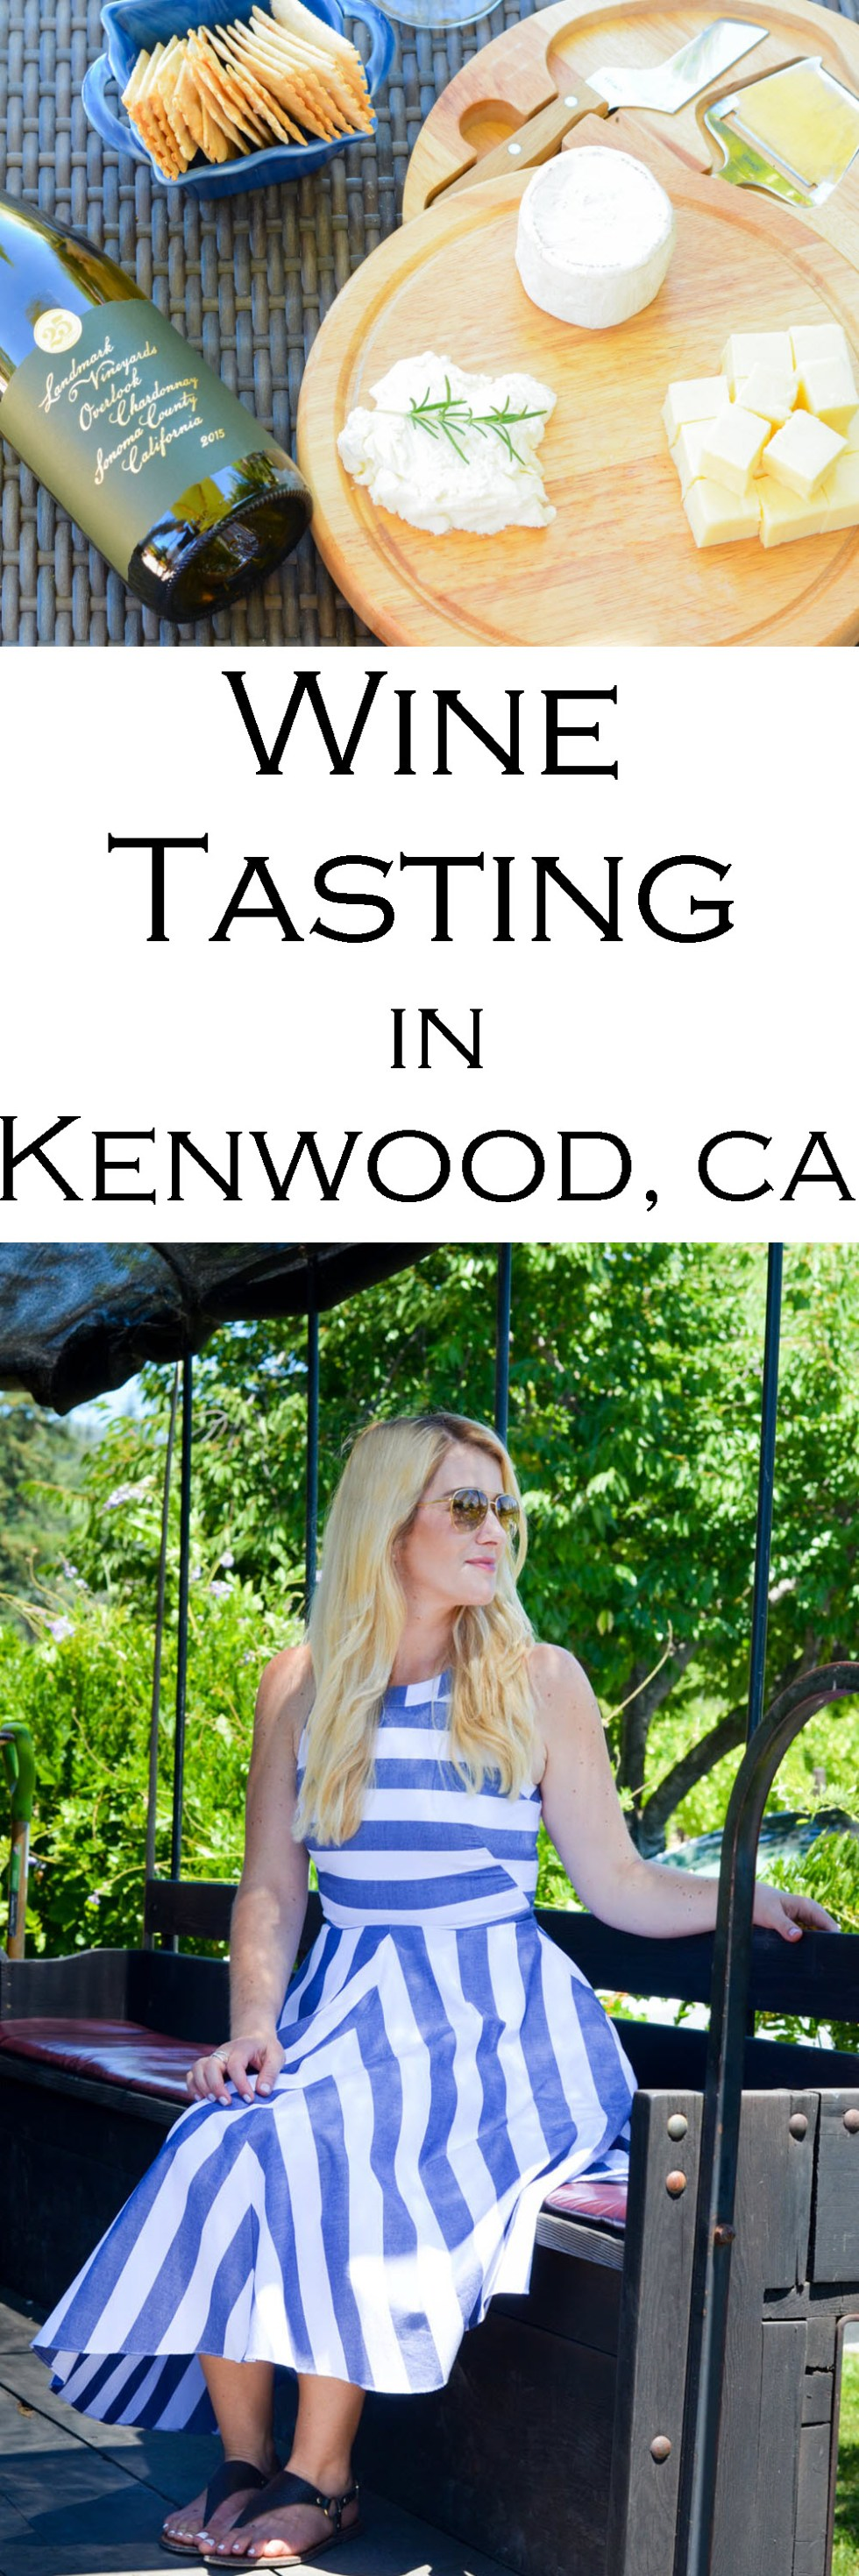 Landmark Vineyards in Kenwood, CA - Great Winery near Santa Rosa. Wine Tasting Outfit Ideas